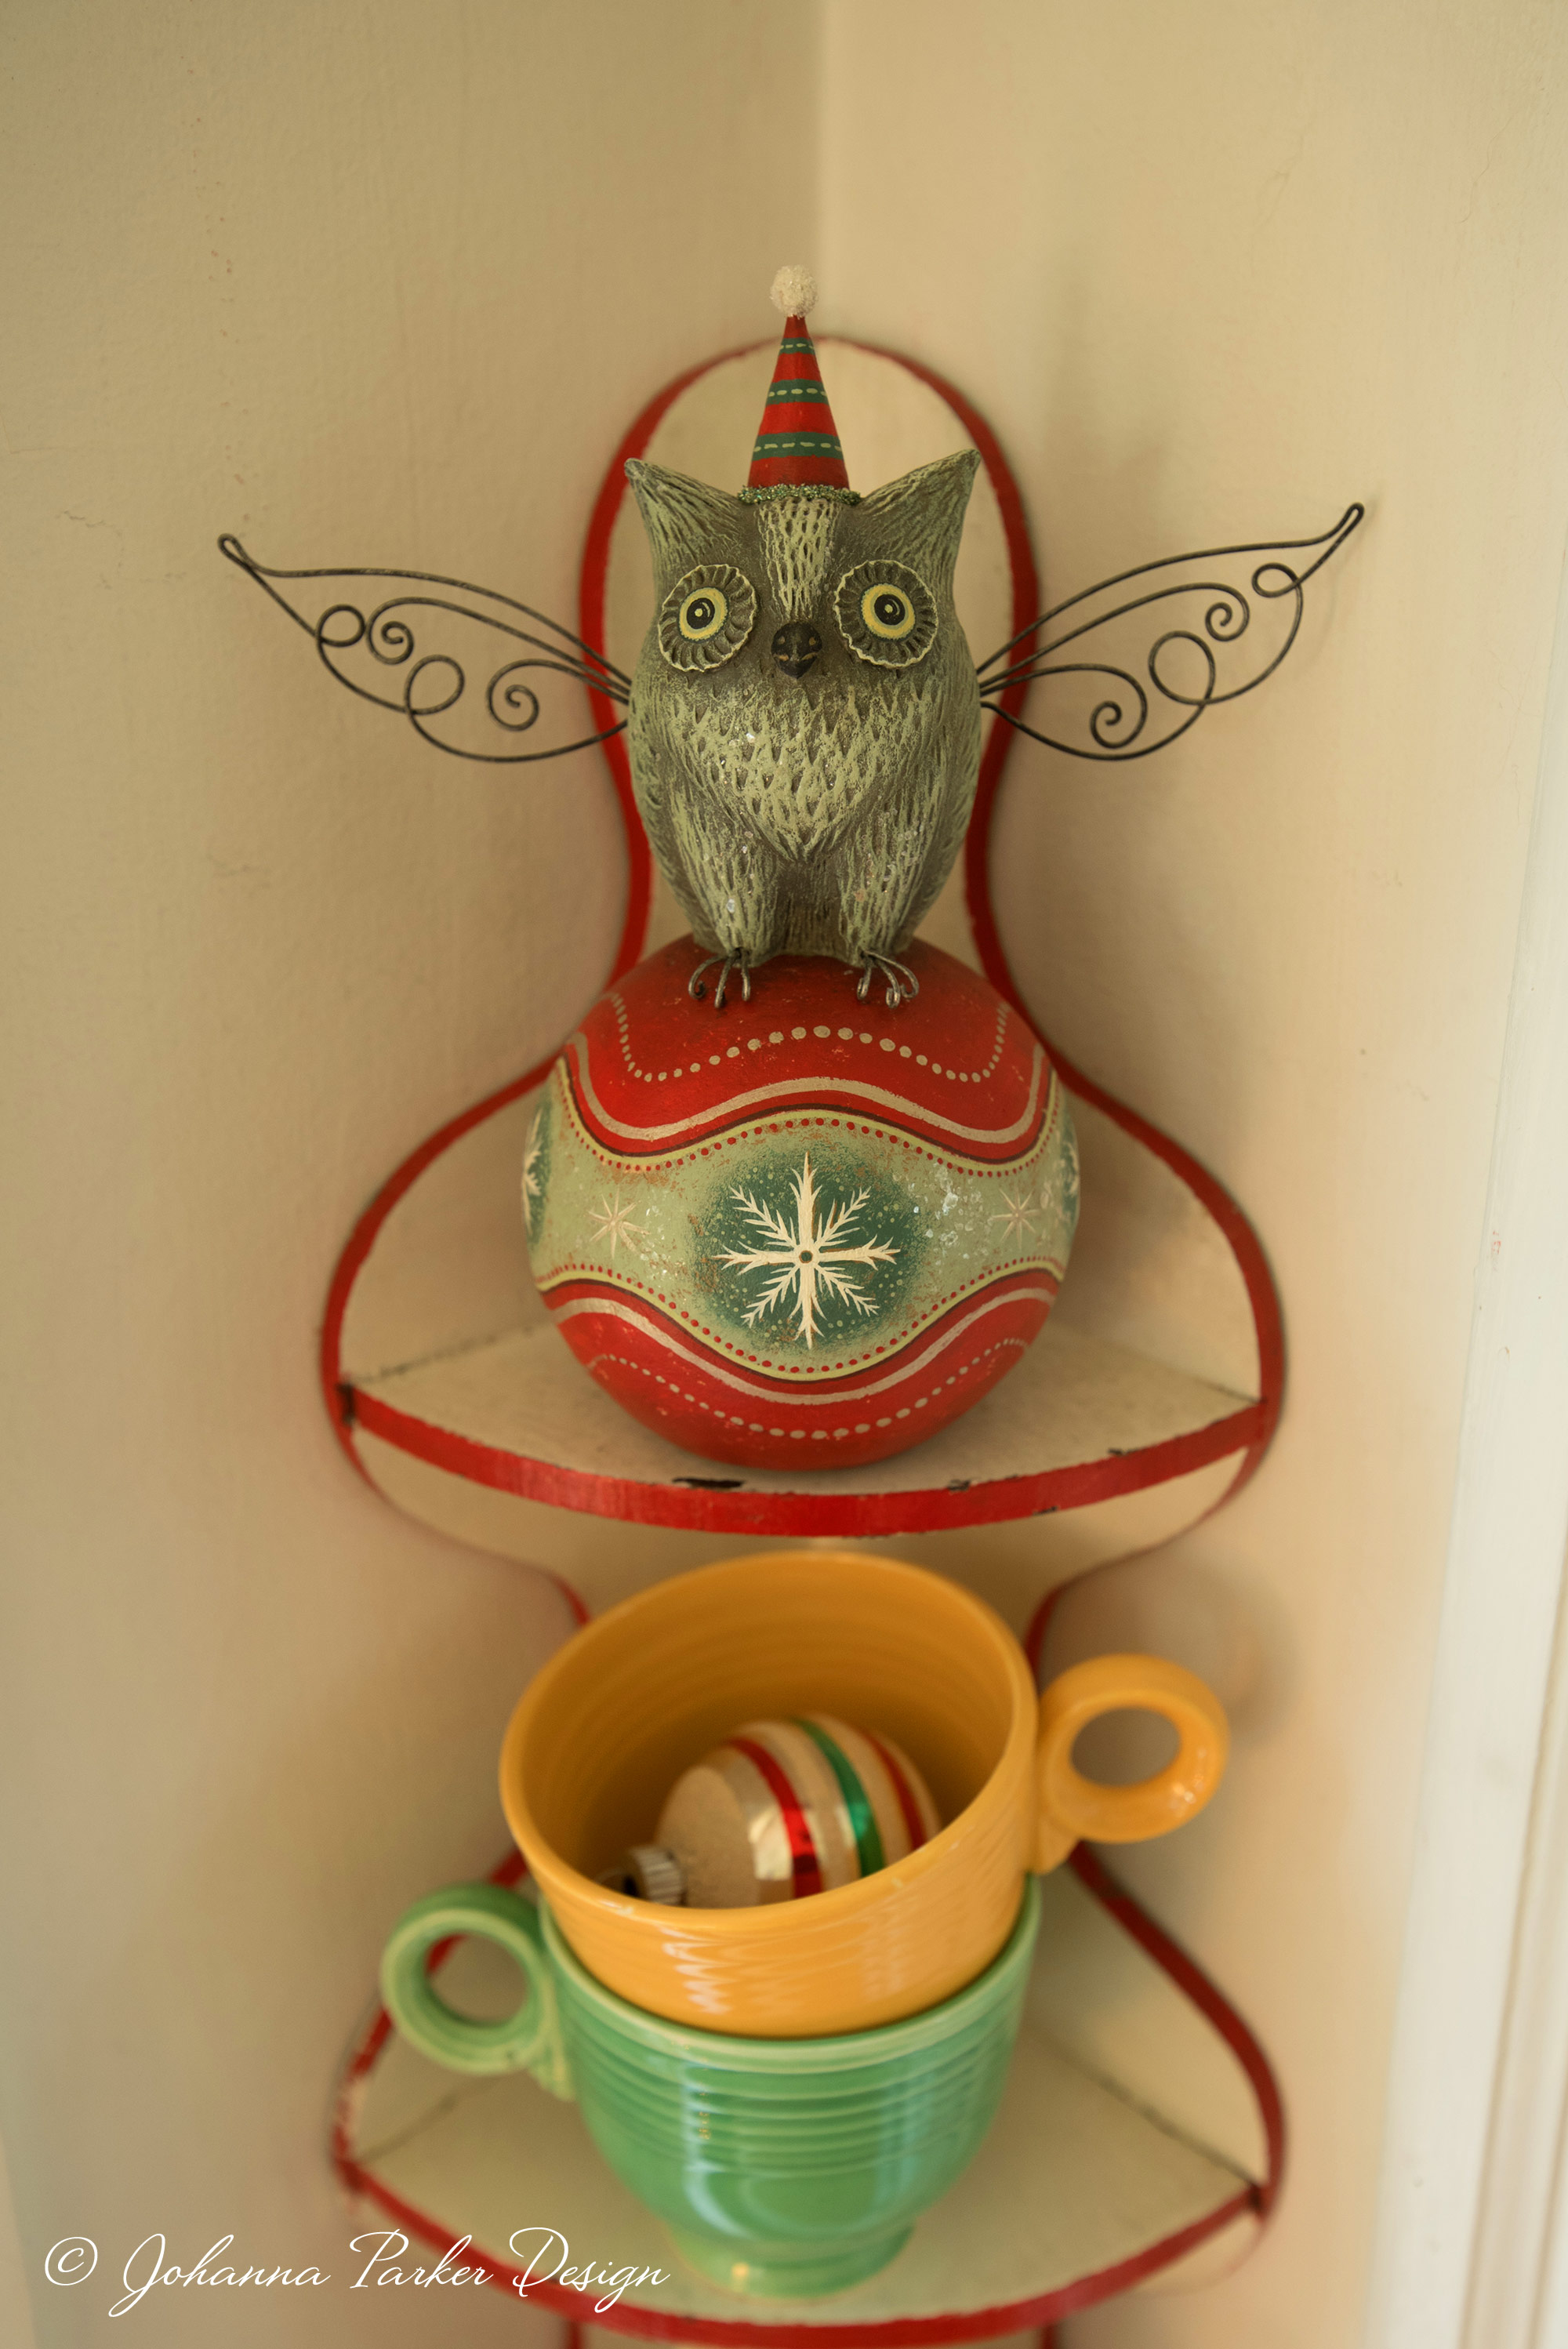 An original owl sculpture,perched atop a decorated ball,keeps watch over my studio space.